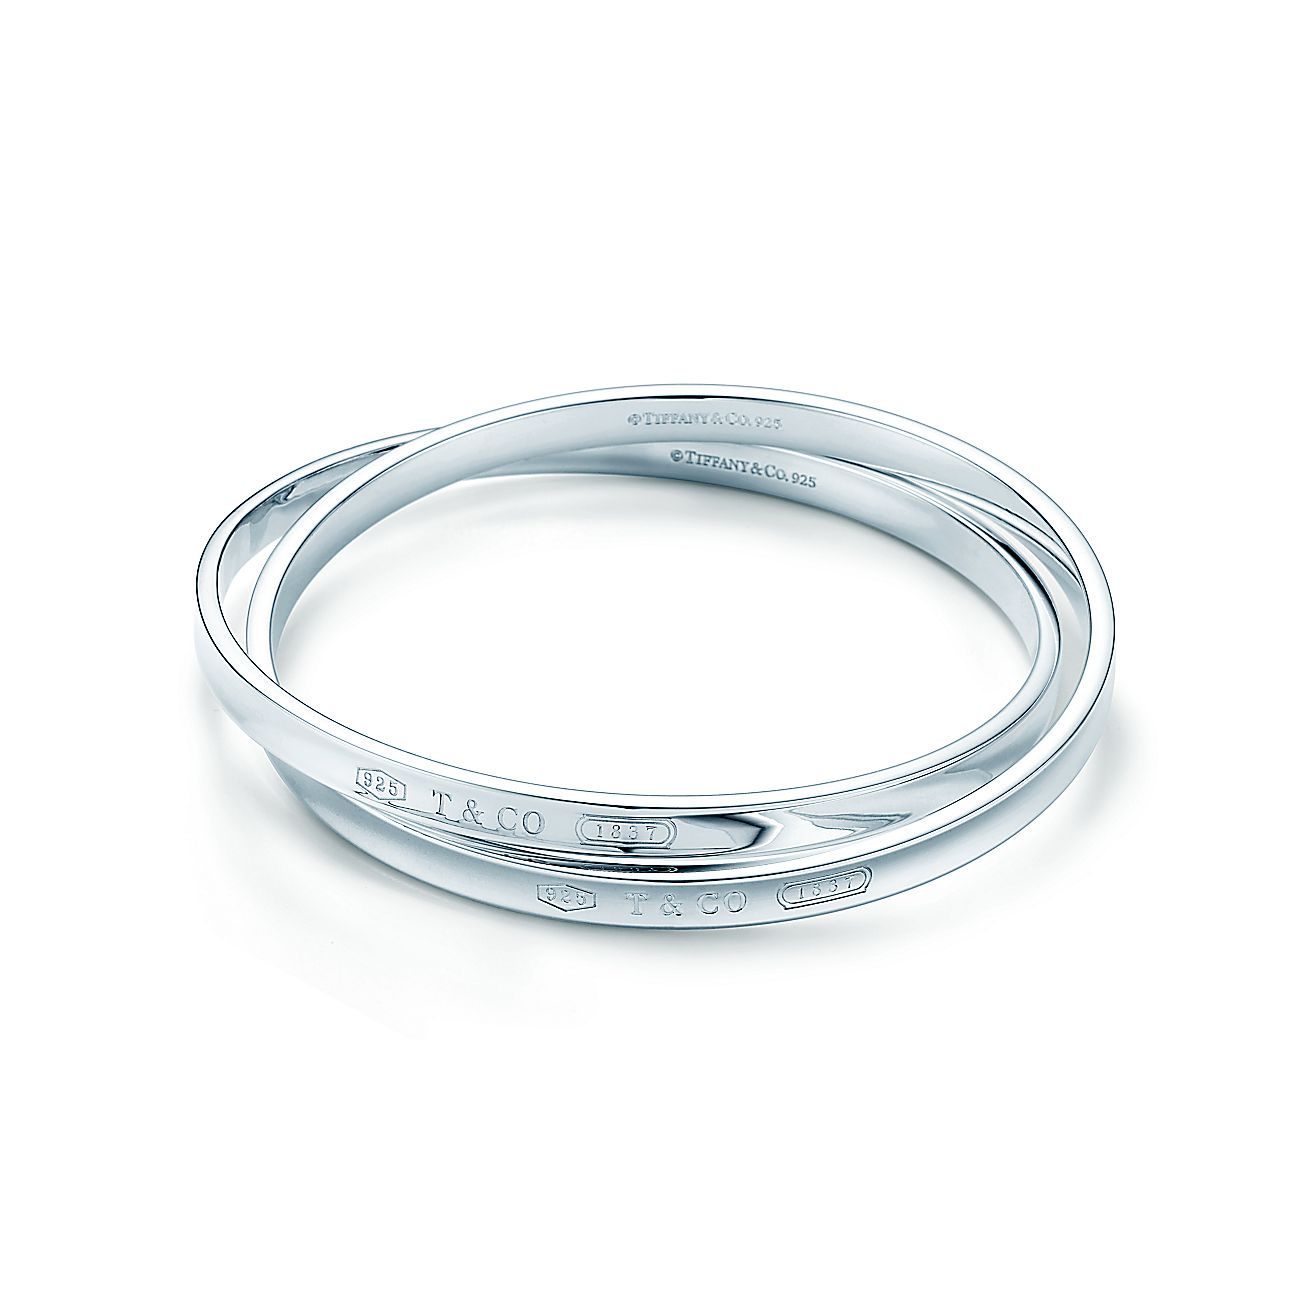 Tiffany 1837®:Interlocking Circles<br>Bangle